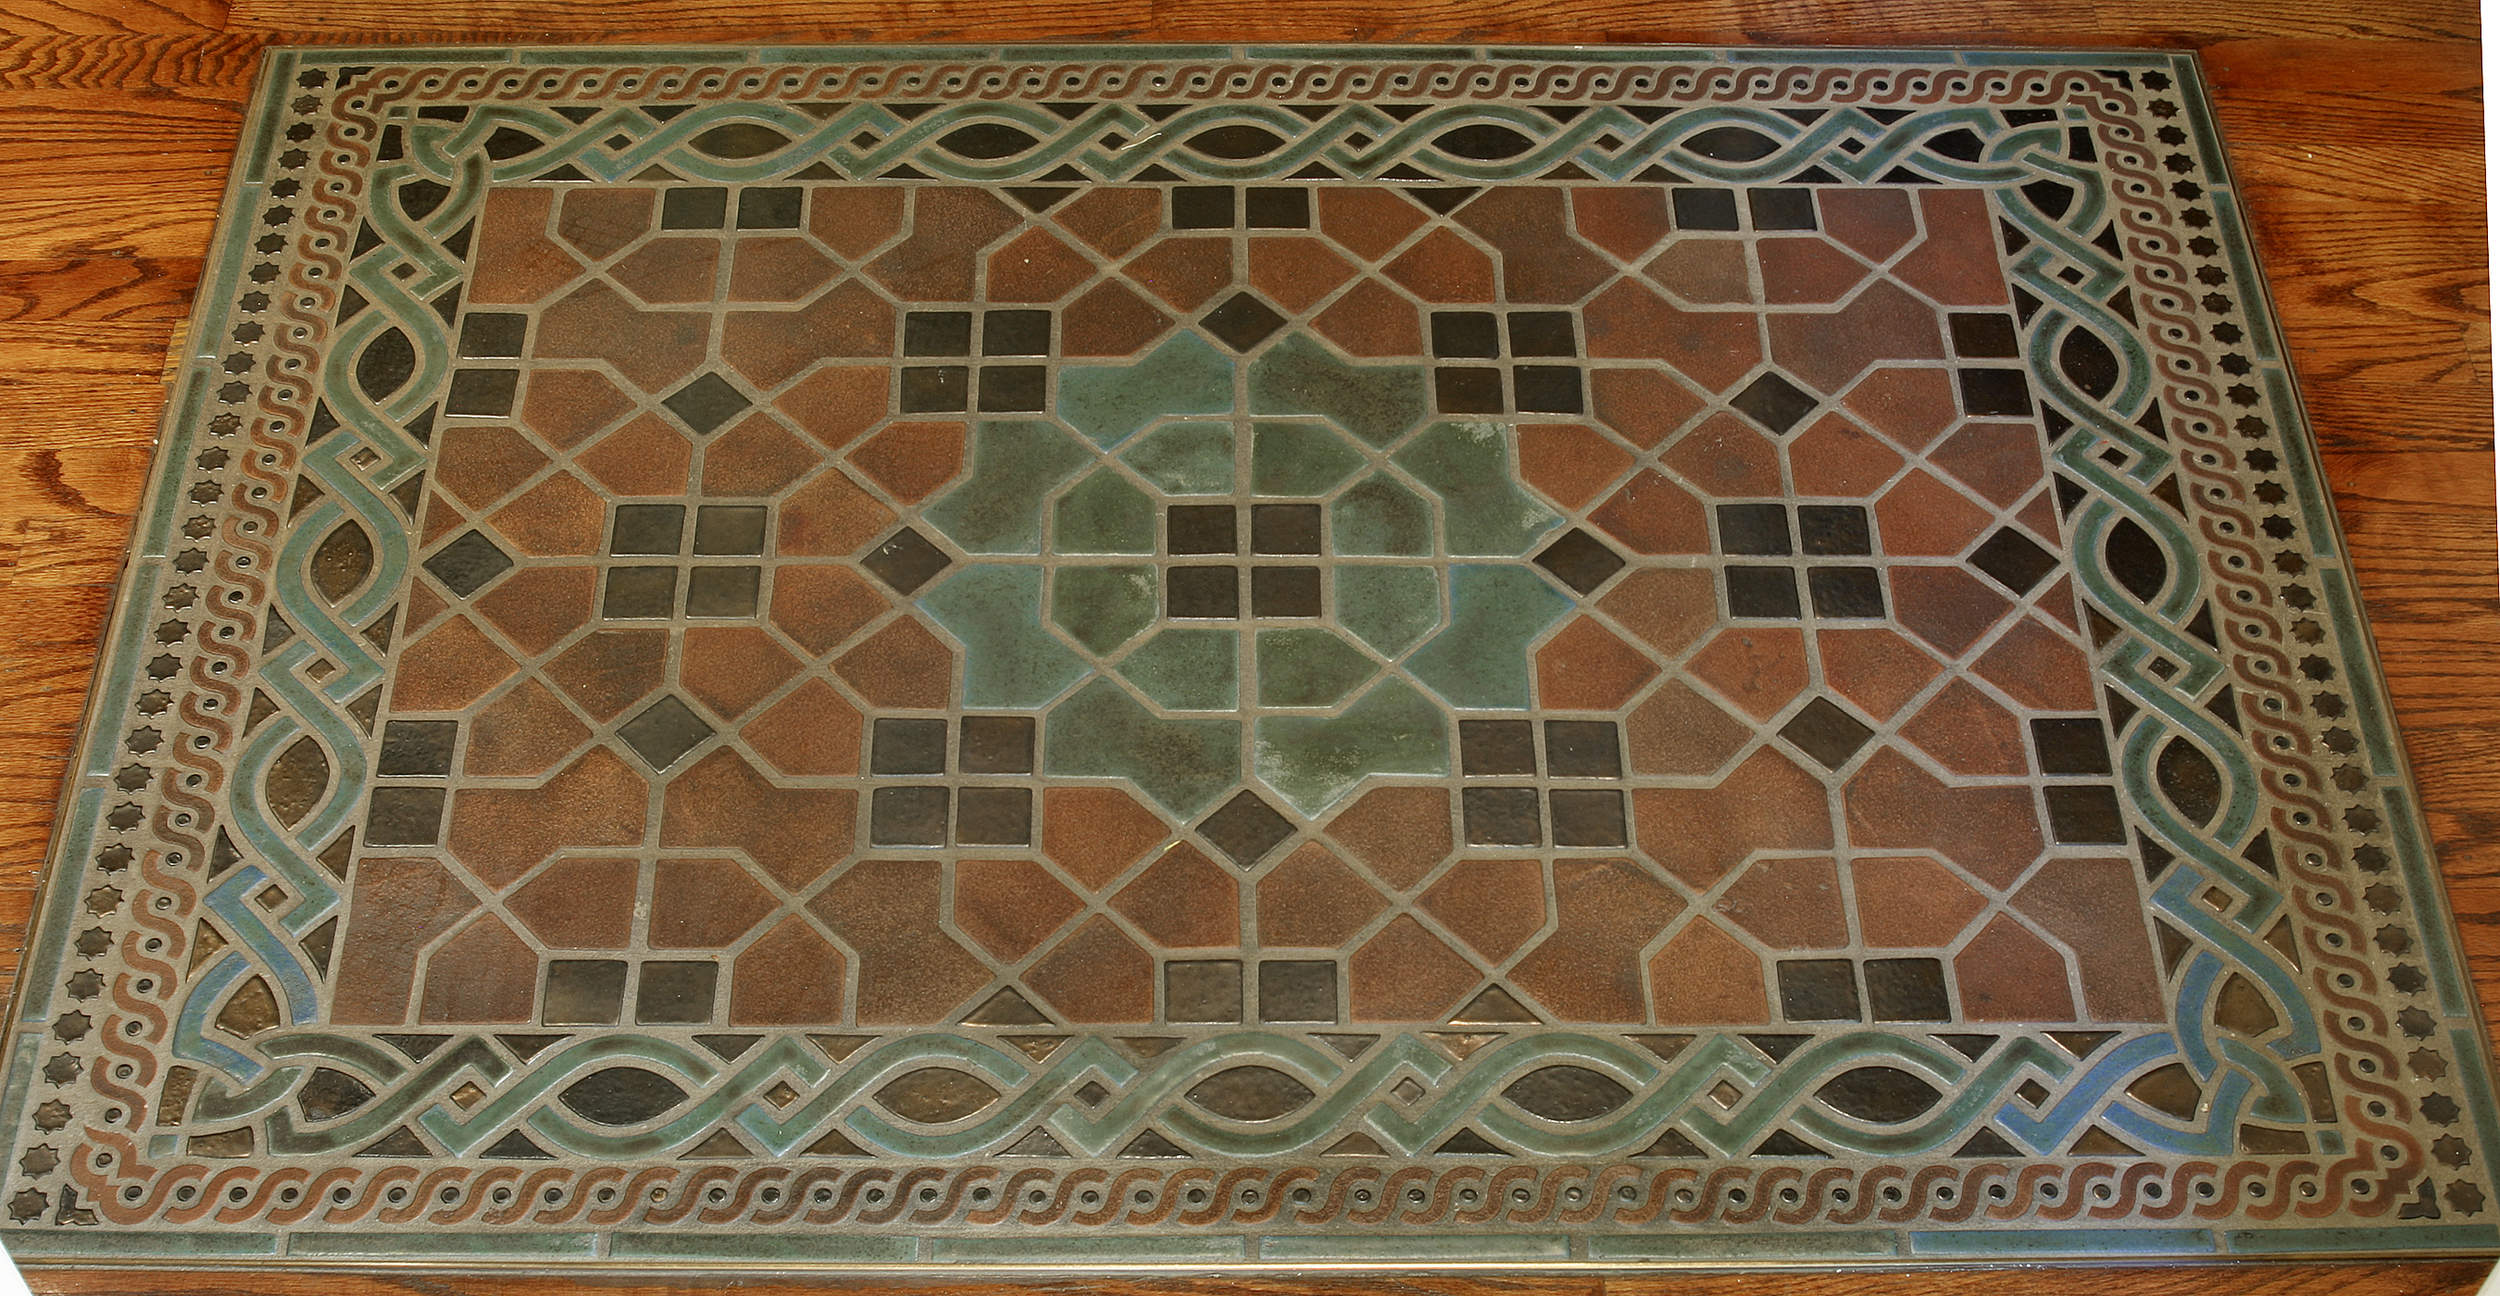 04-FloorDetail-01.jpg